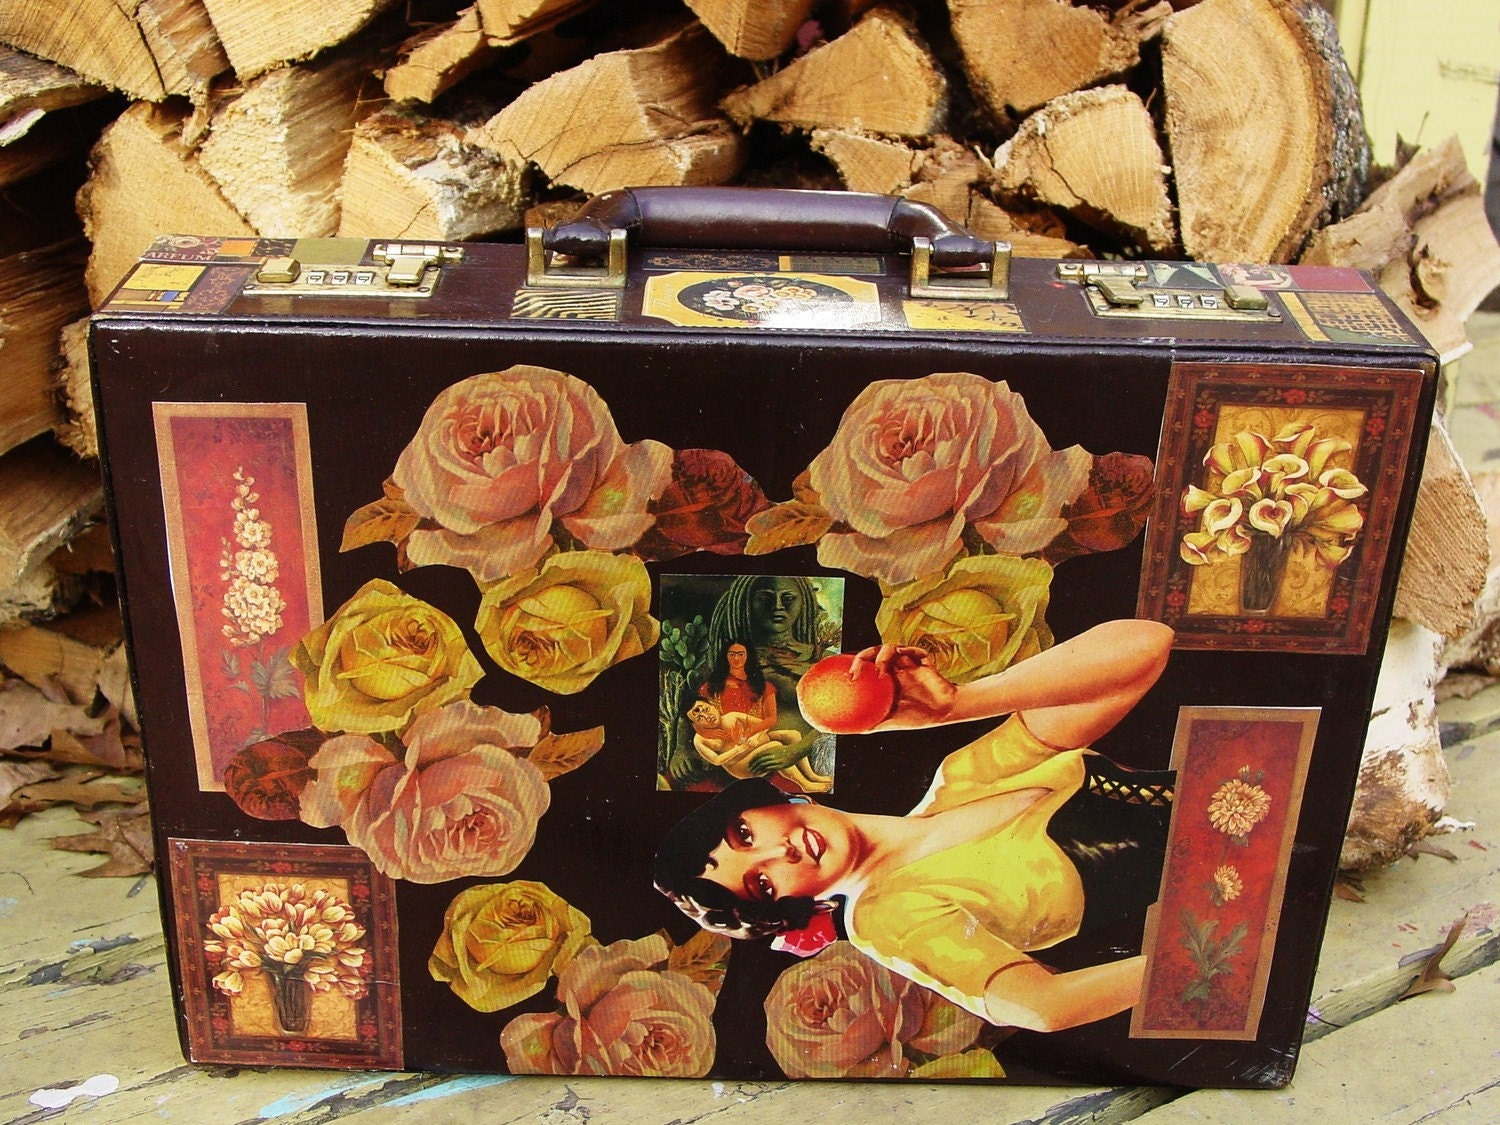 Frieda Kahlo vintage leather briefcase by recycled artist C. Reinke